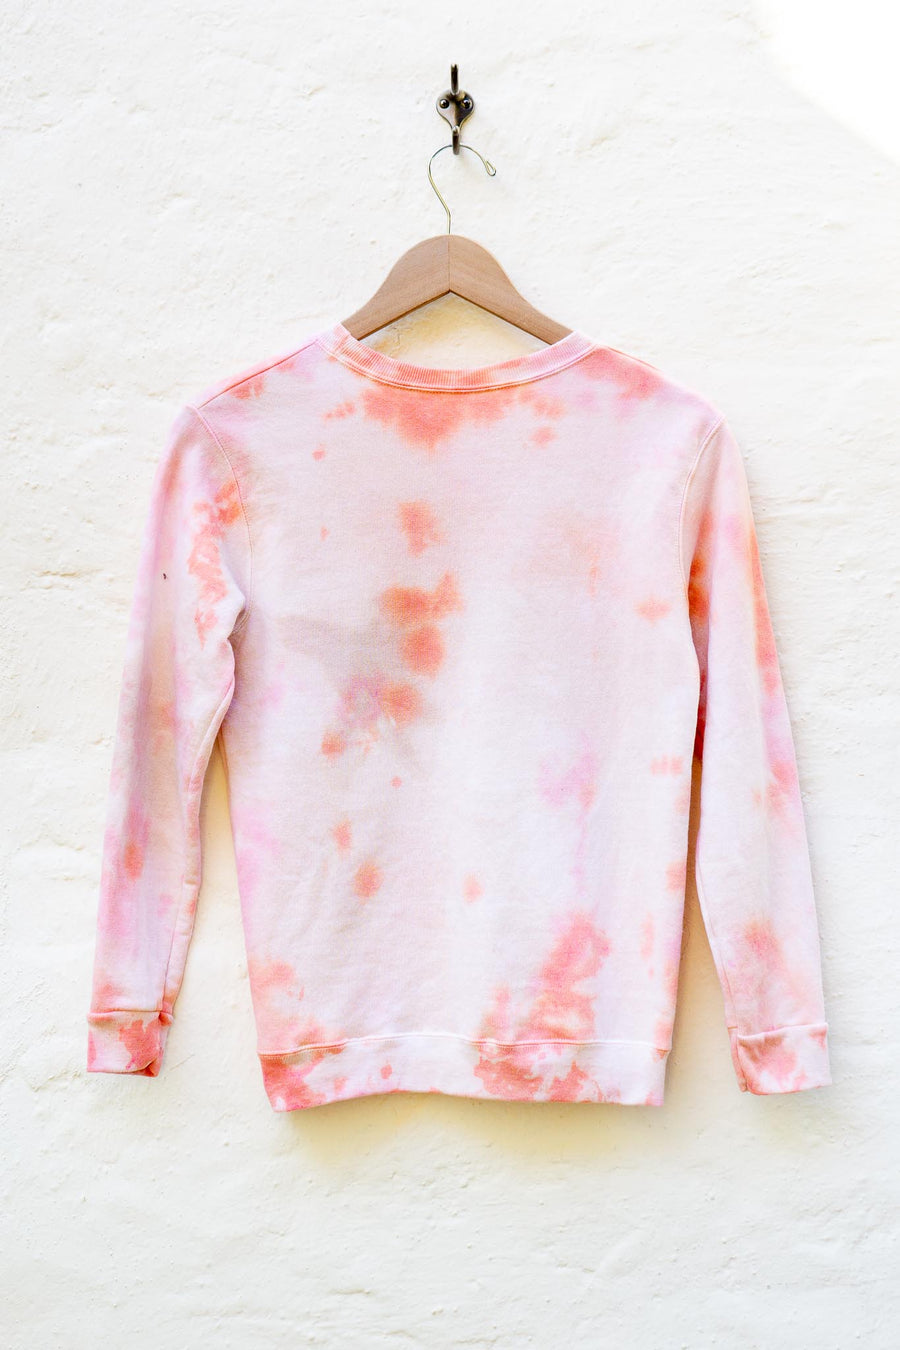 Beachwood Tie Dye Sweatshirt - The Canyon